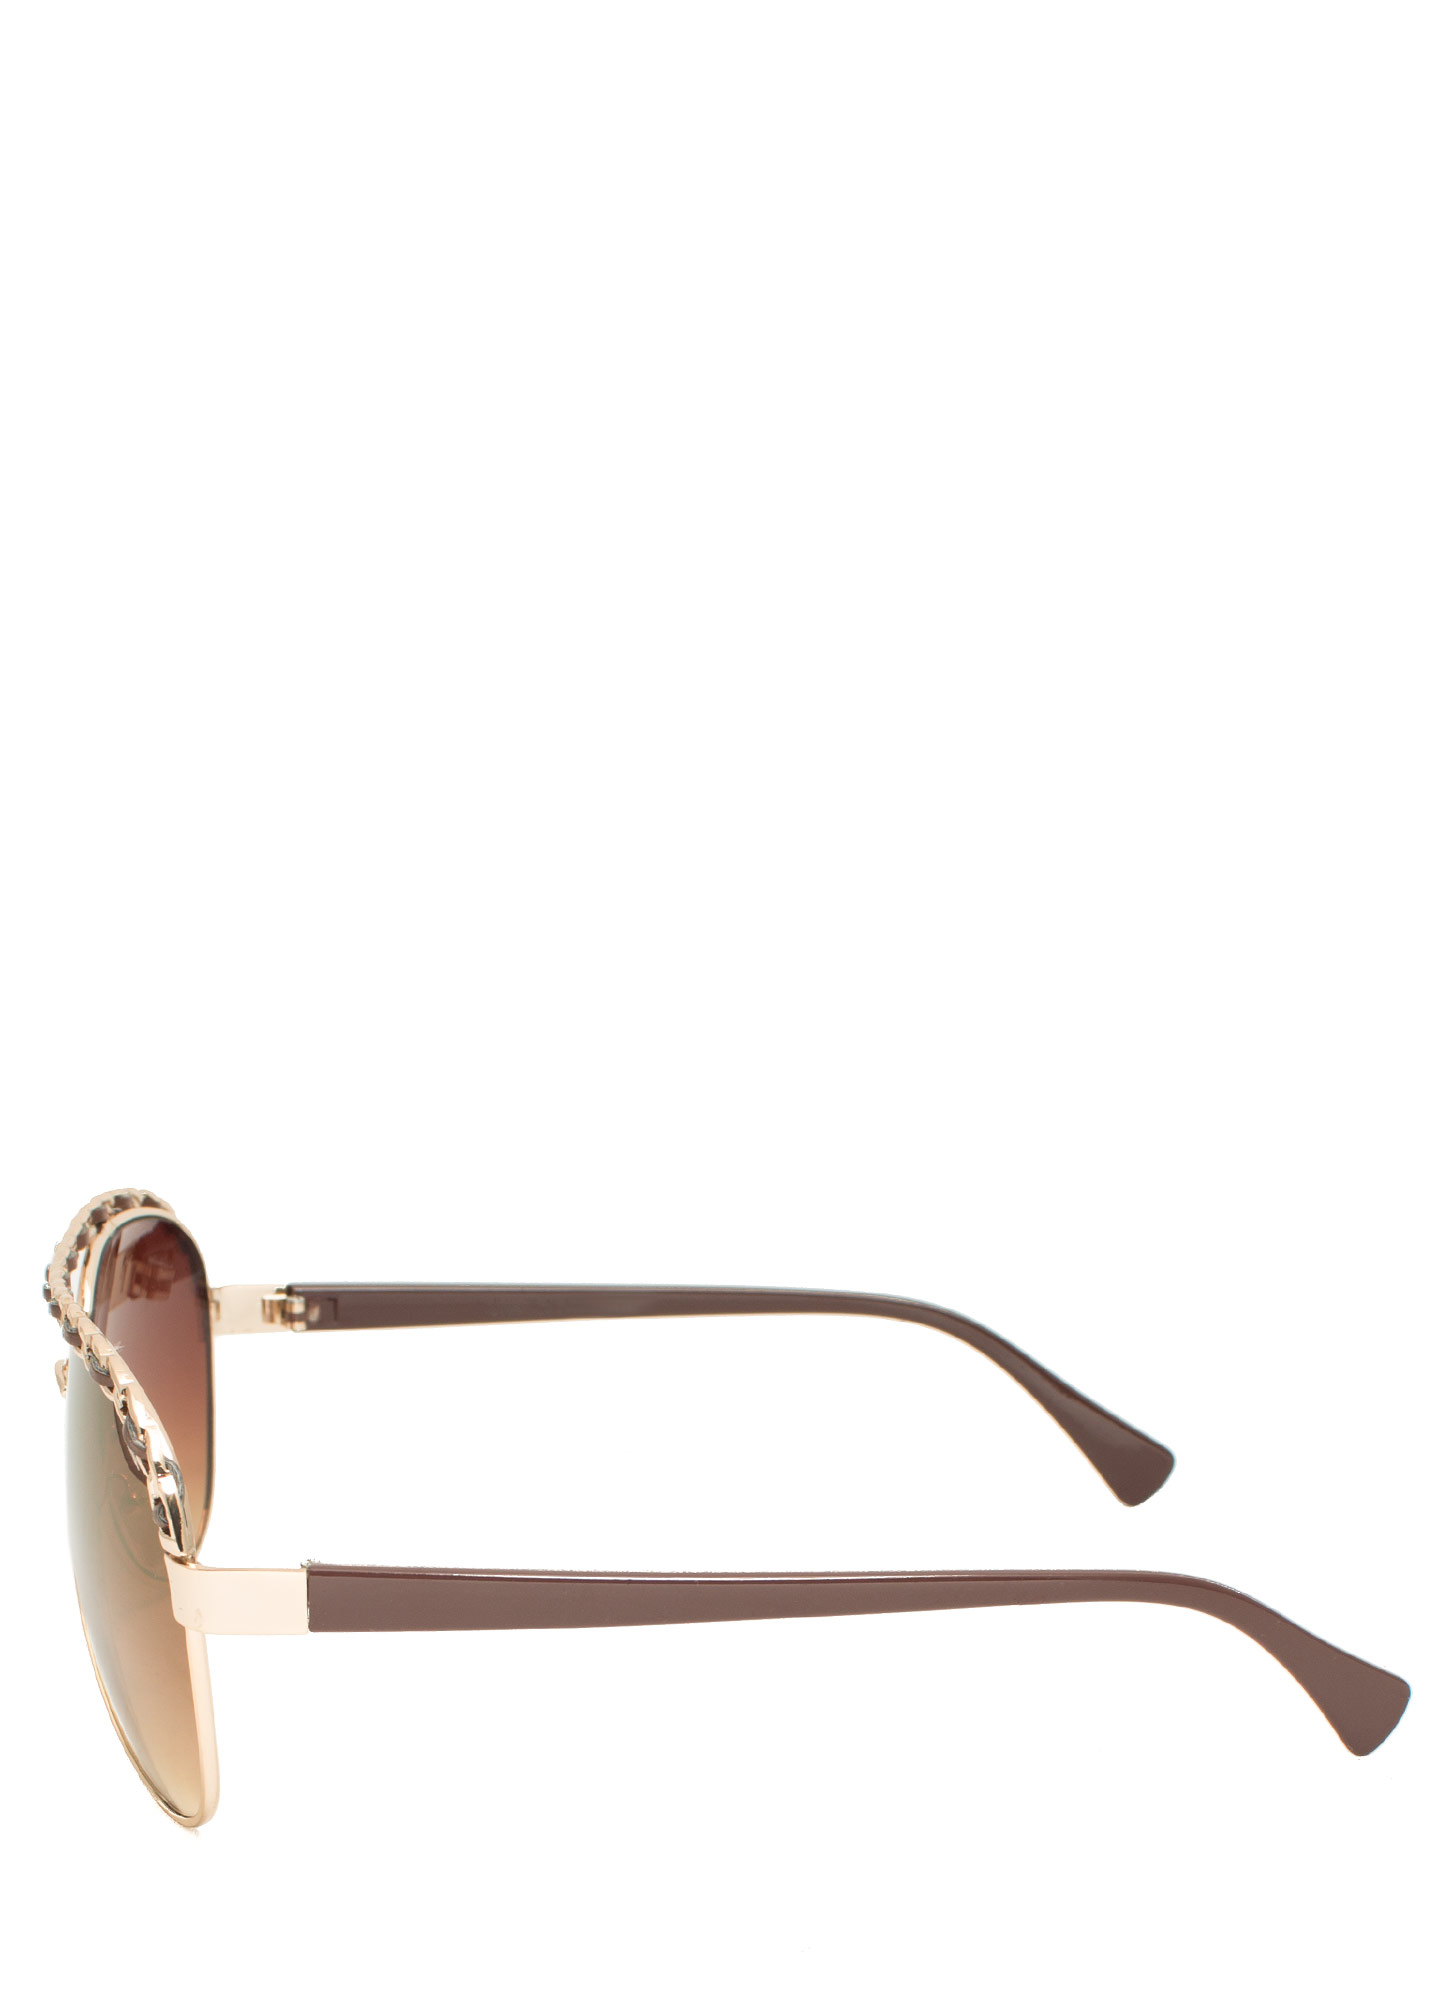 Chain Trimmed Aviator Sunglasses BROWNGOLD